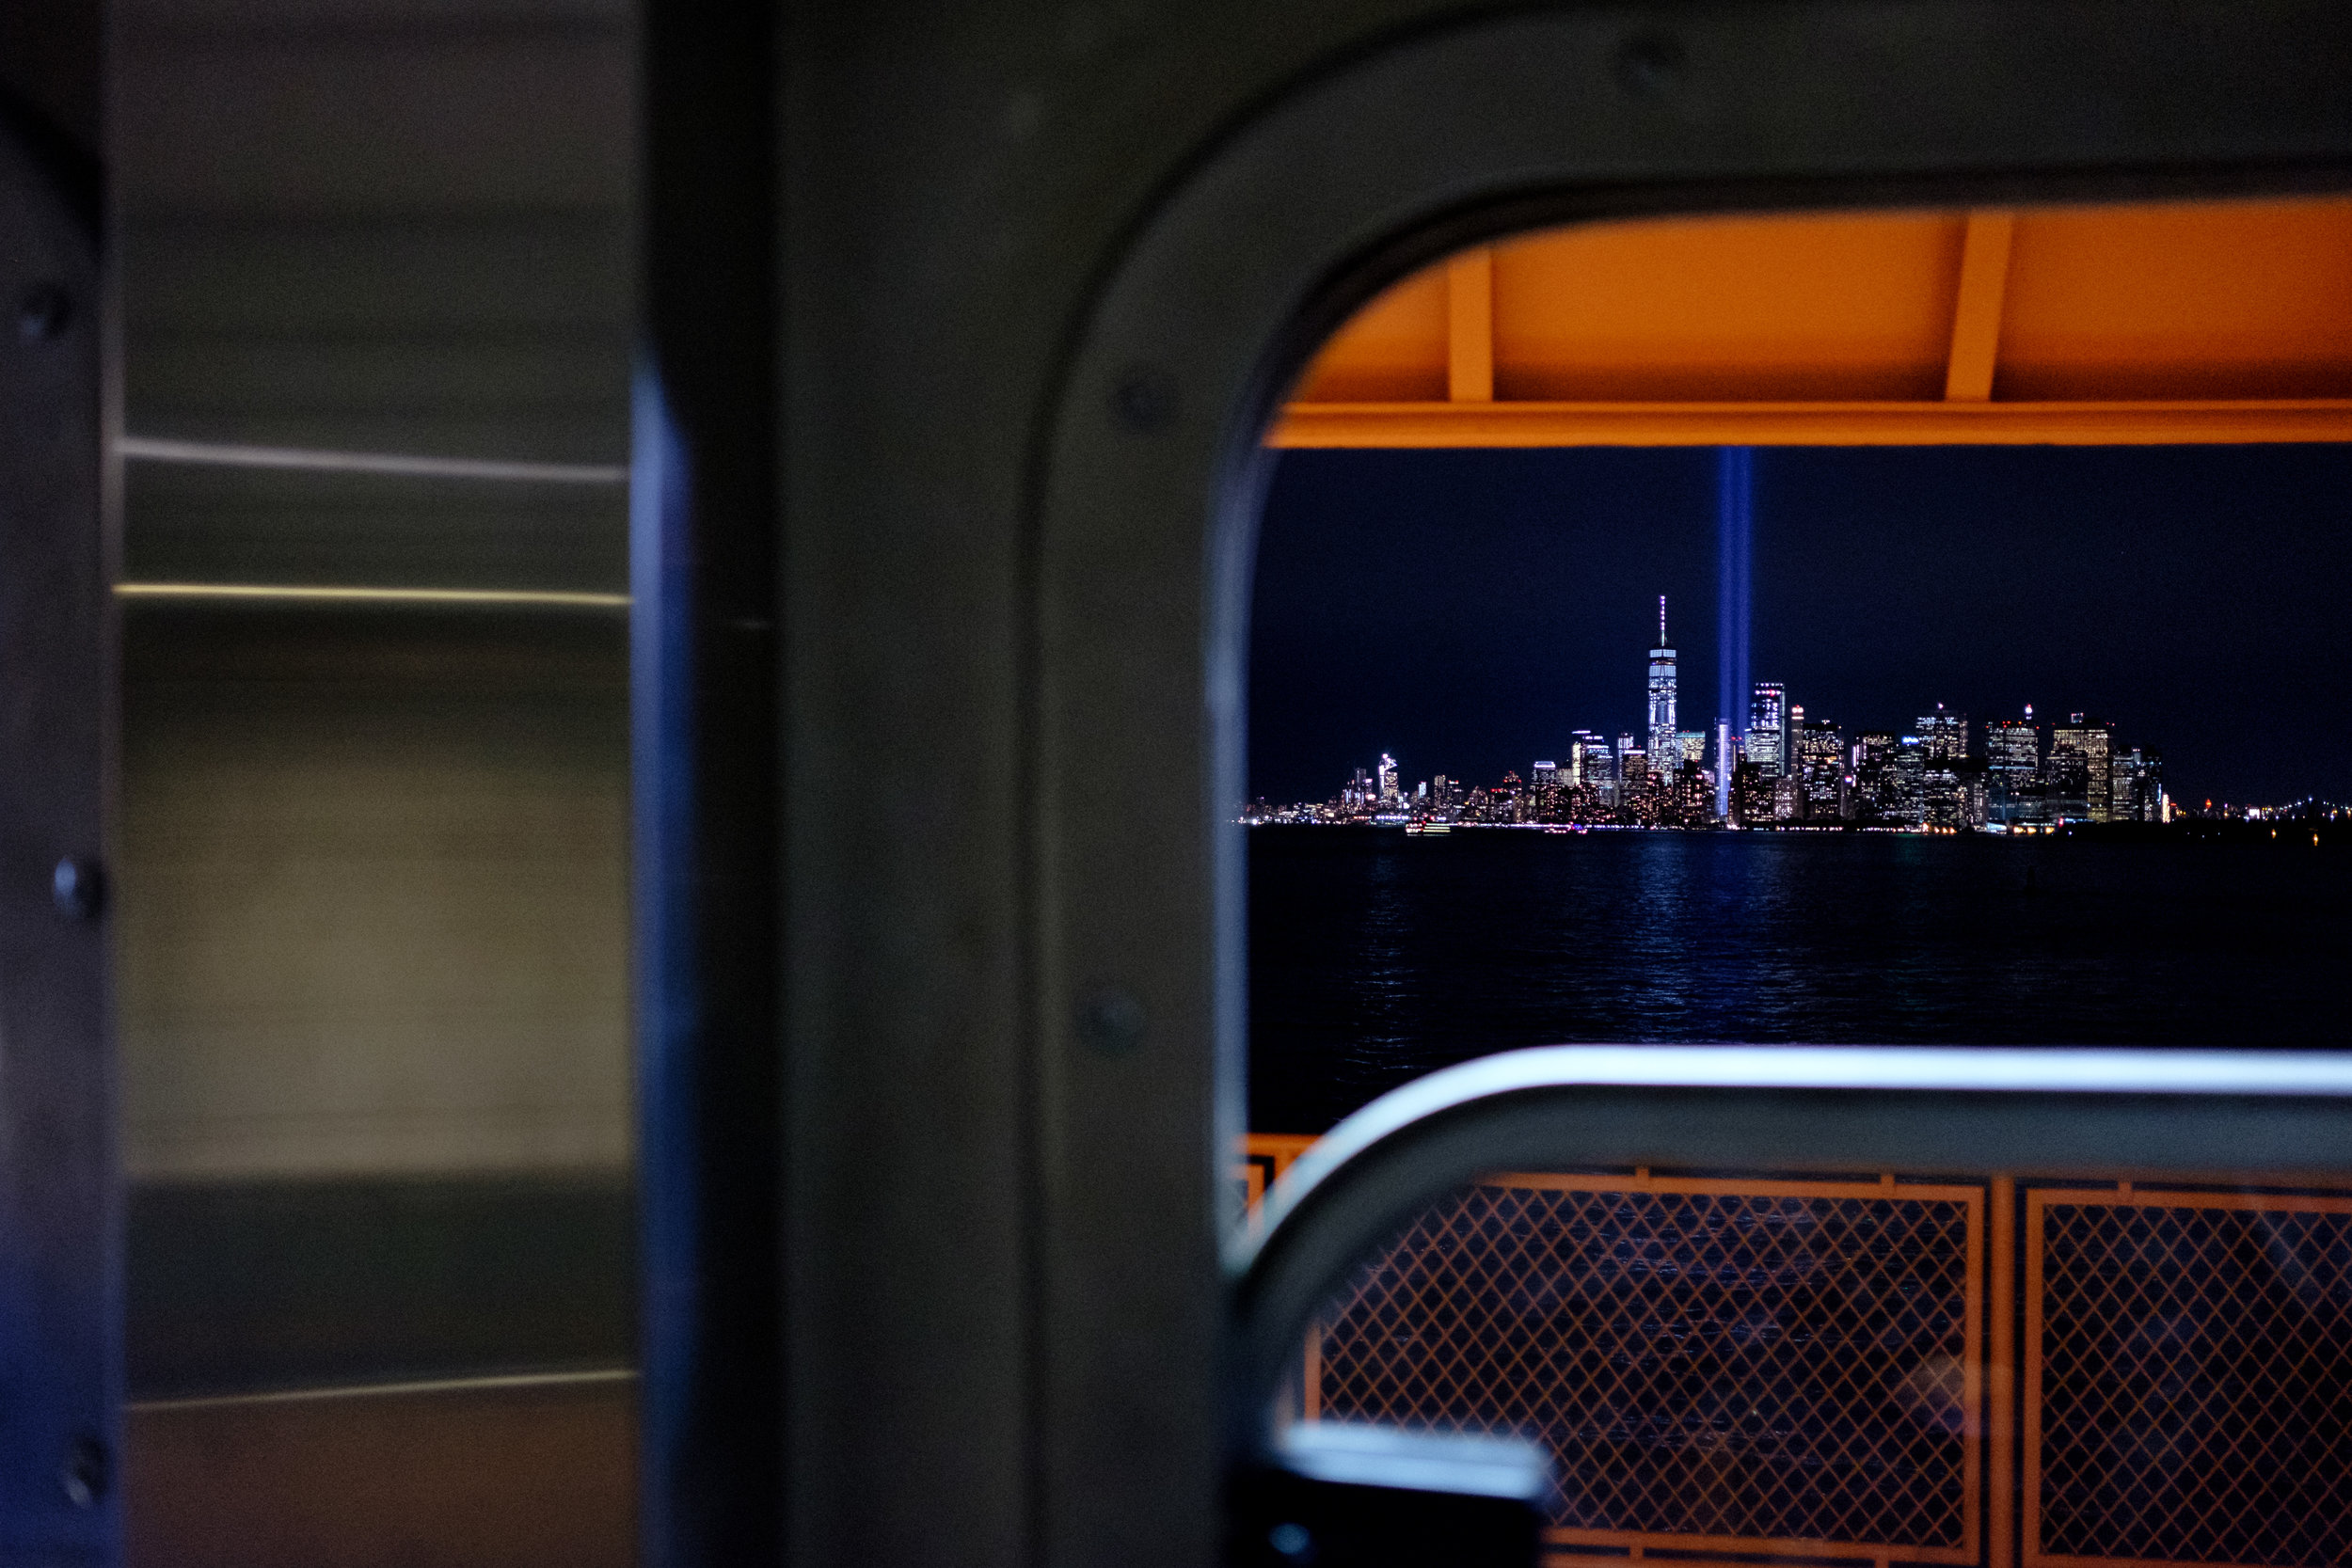 """Tribute"" September 11, 2017. Staten Island Ferry, New York Fujifilm X-Pro2, 23mm, f/2, 1/50, ISO 3200"